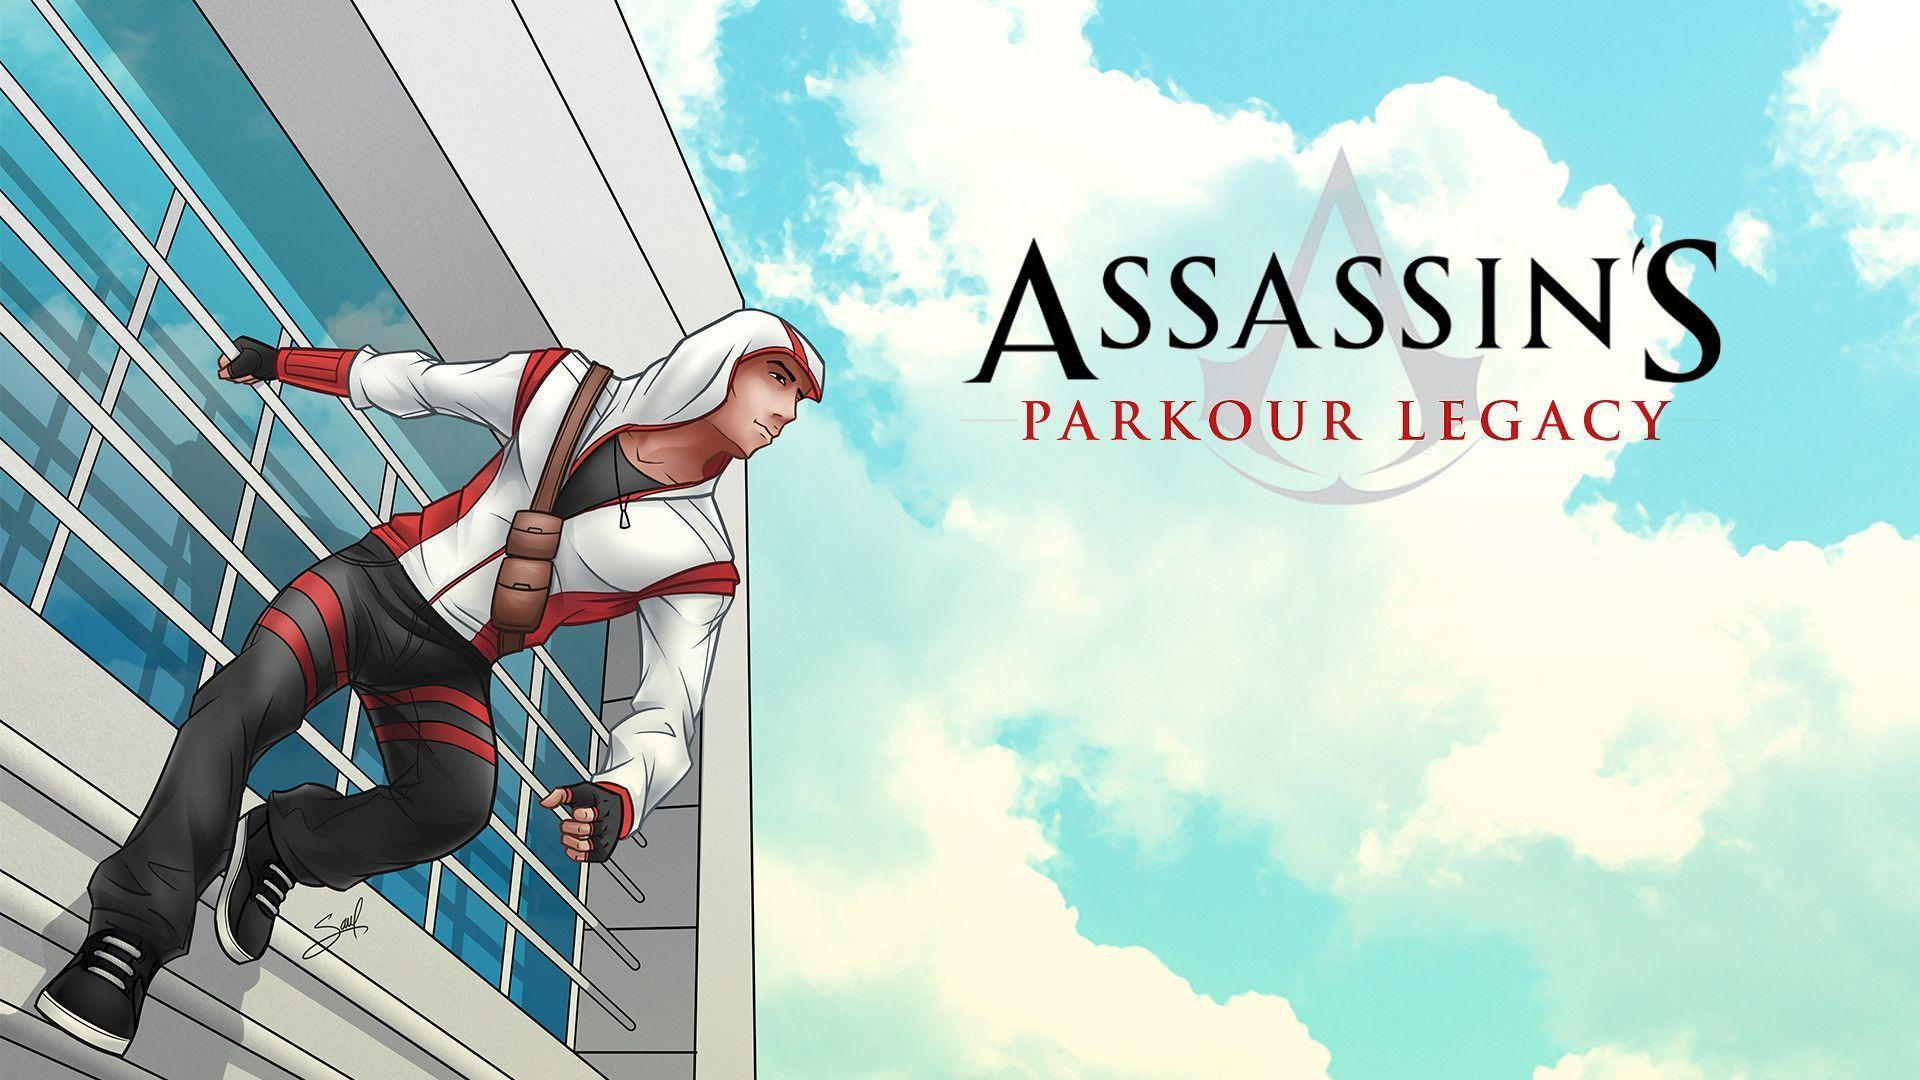 Assasins&Creed: Parkour Legacy Wallpapers by saulvillarroel on